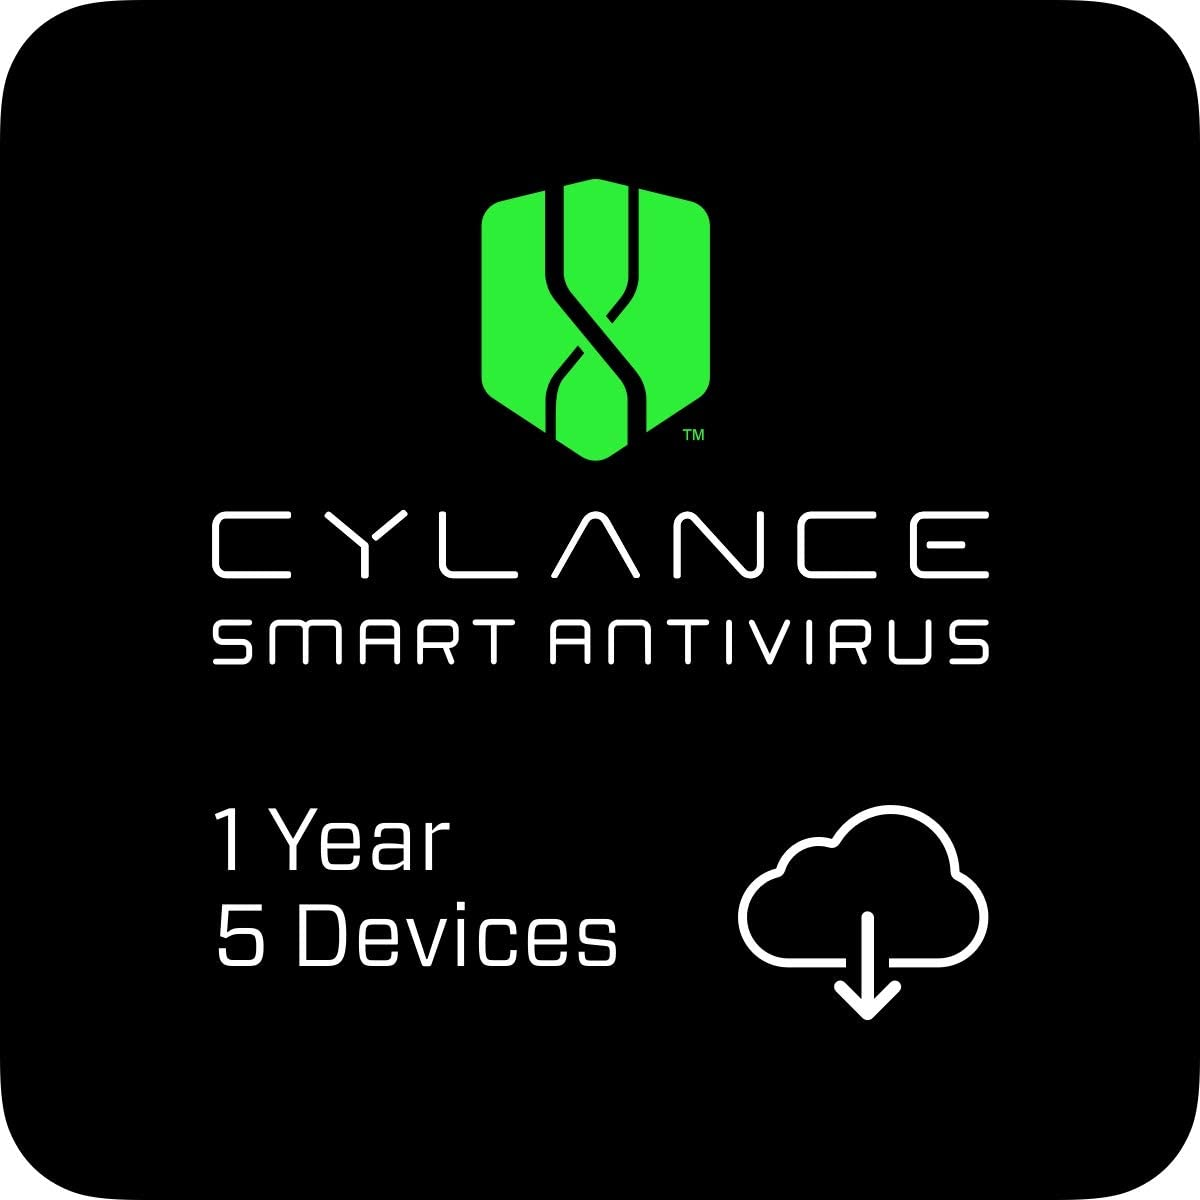 Don't miss the campaign Cylance Smart Antivirus High material 1 Year 5 Mac Code PC Devices Online